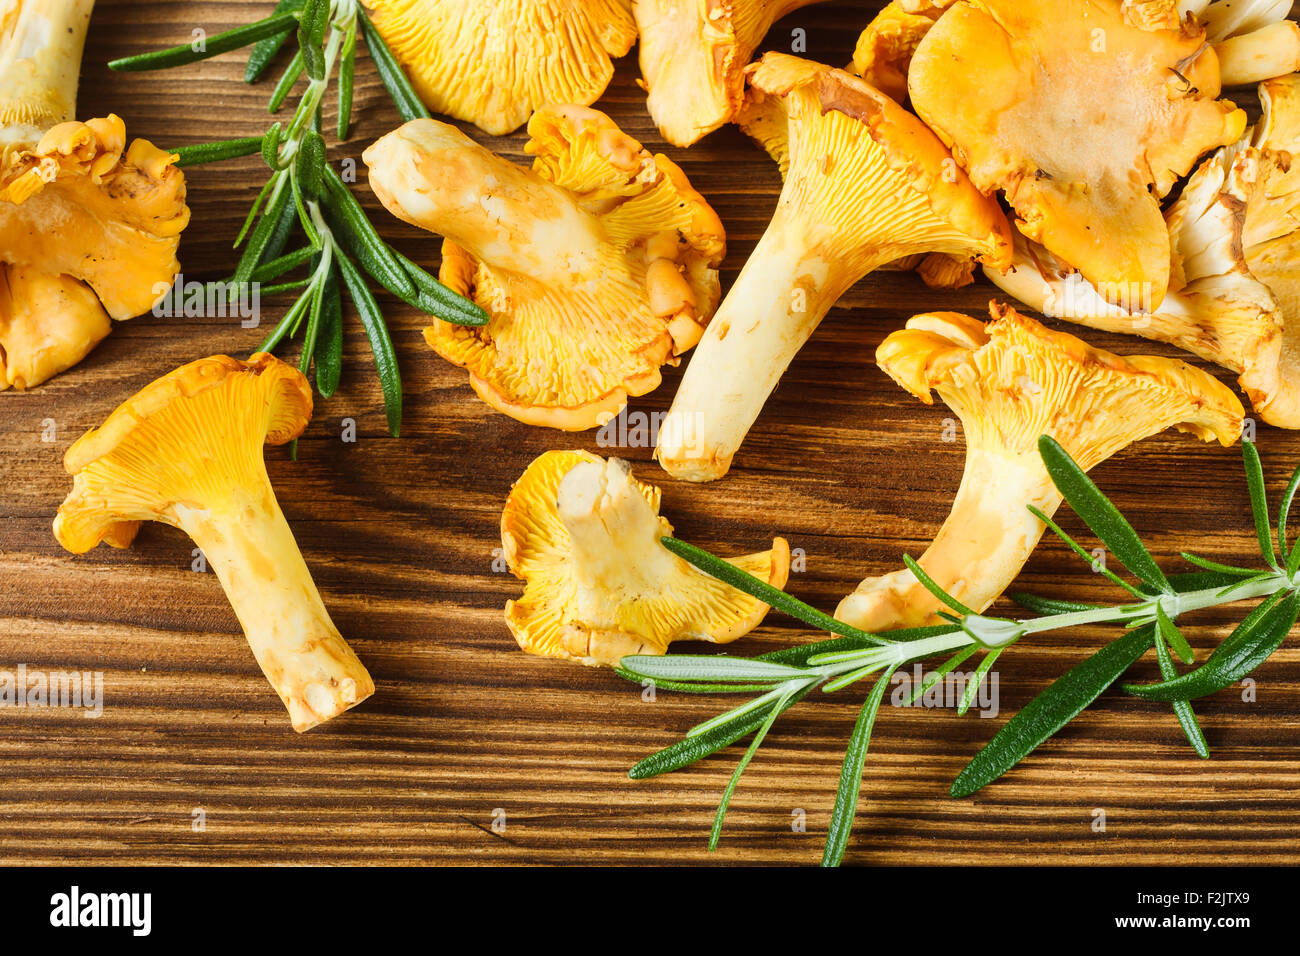 Yellow chanterelles on wooden table - Stock Image